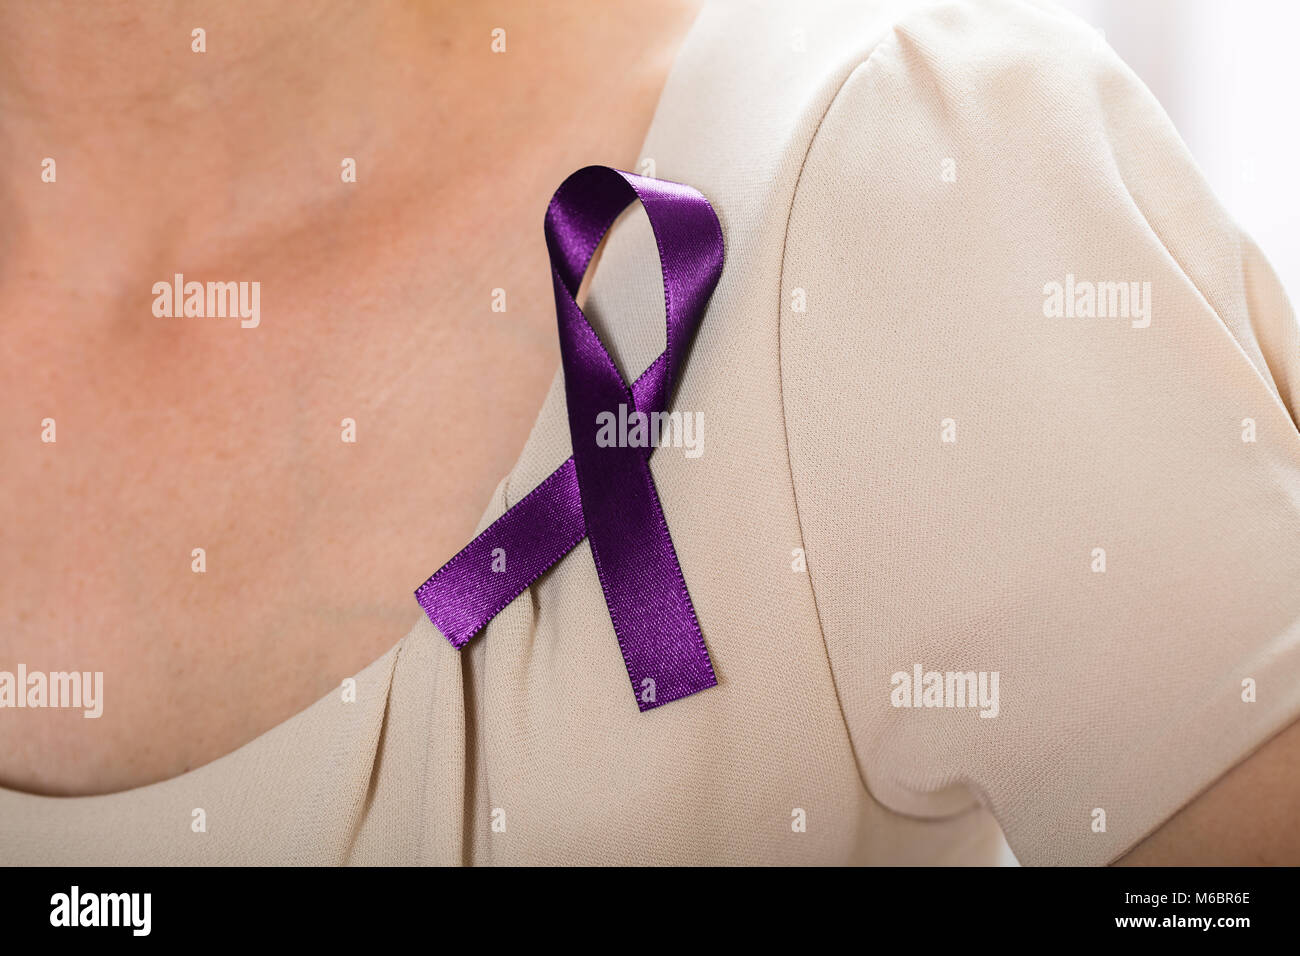 cbc5280edc428 Close-up Of A Woman With Violet Ribbon To Support Testicular Cancer  Awareness - Stock